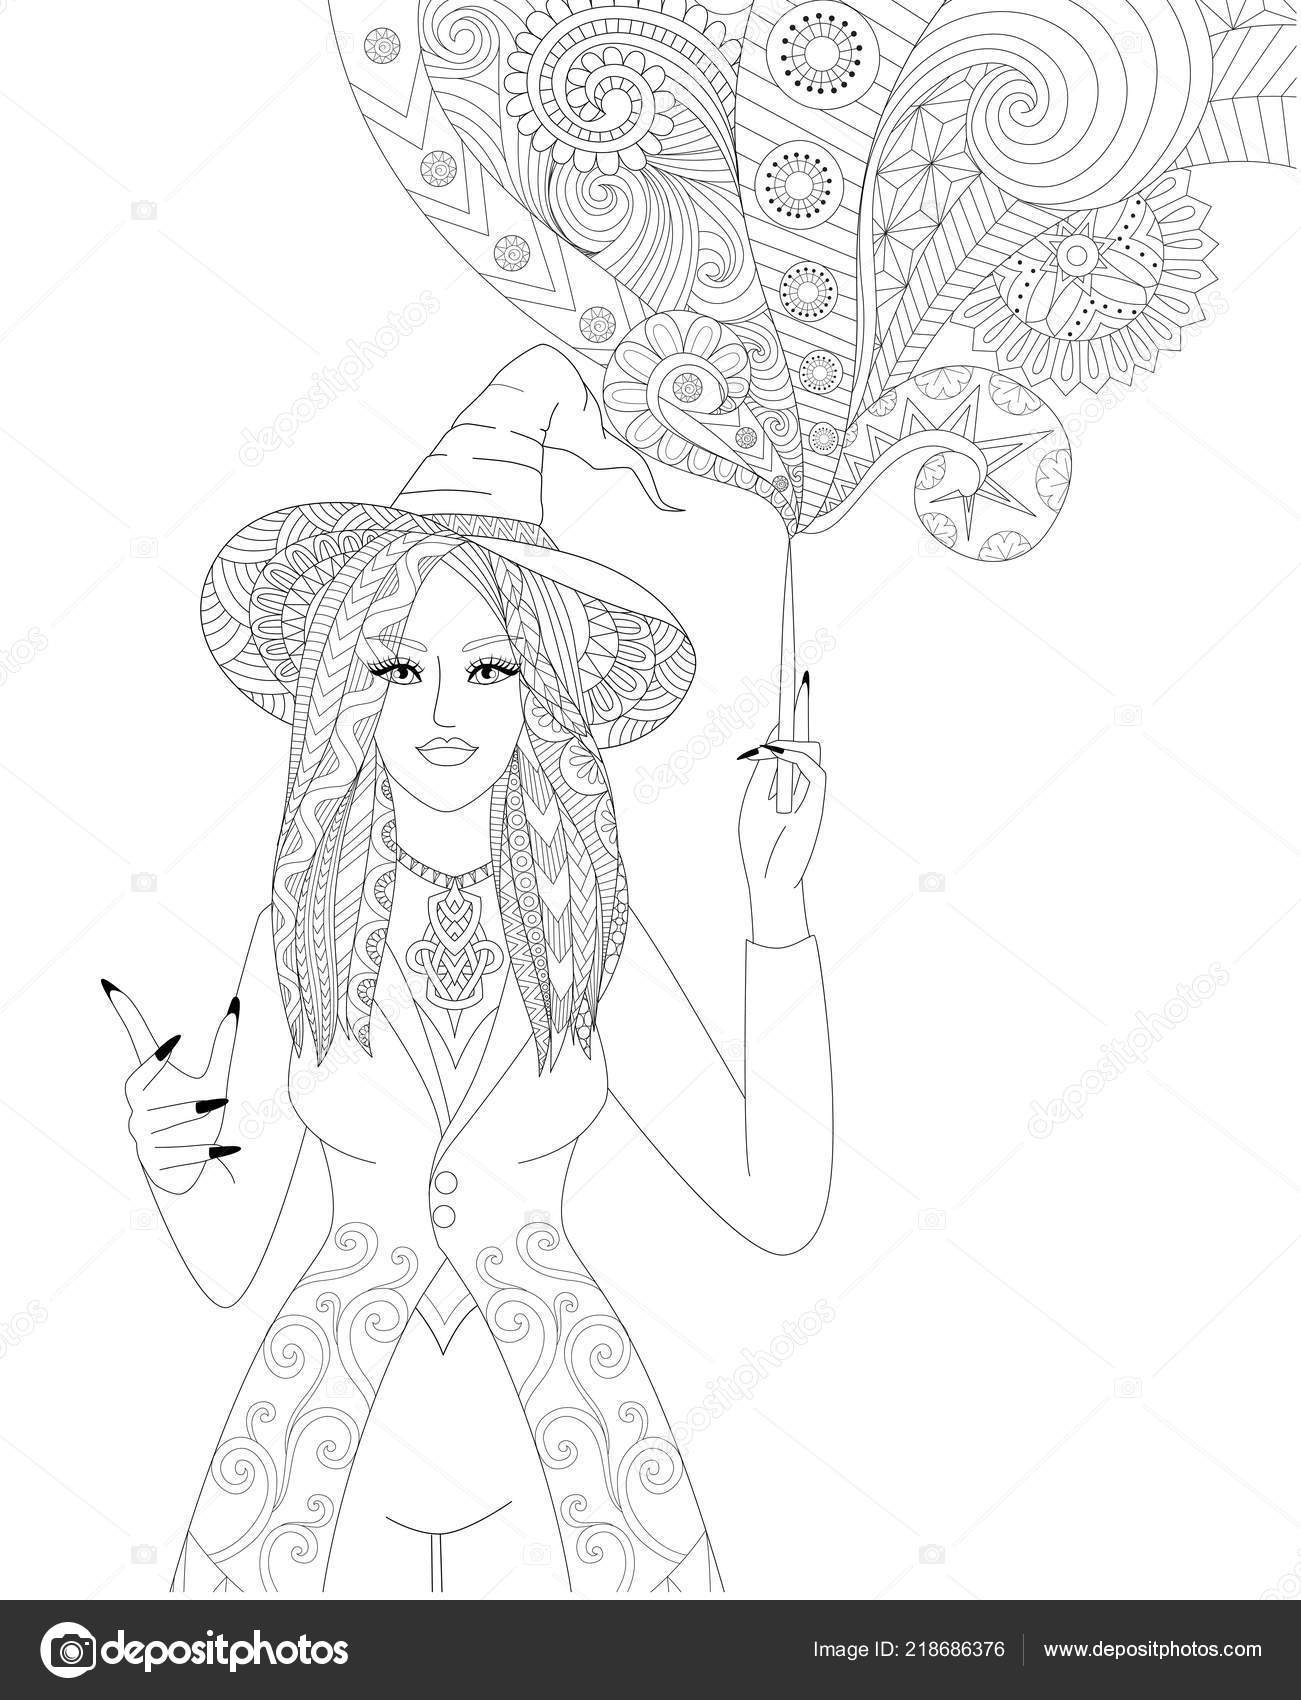 Colouring Pages Coloring Book Adults Halloween Girl Witch Spelling